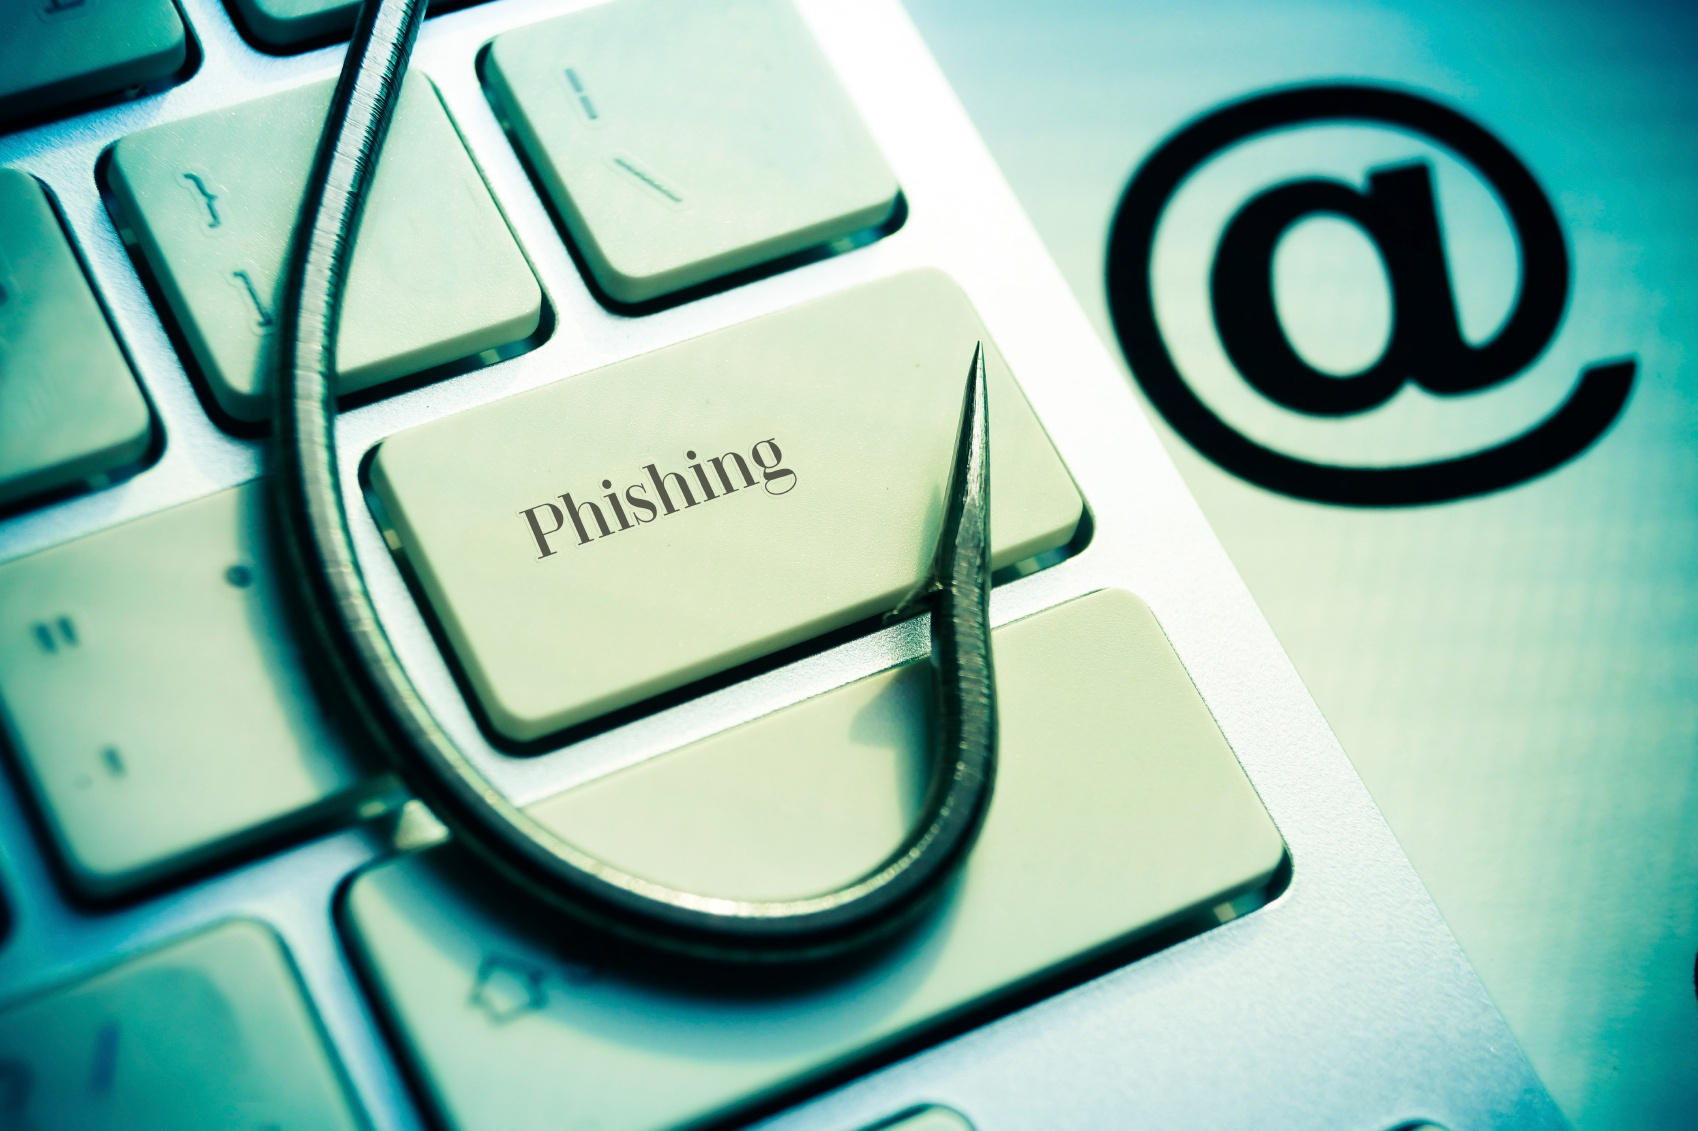 Phishing: What to Look For and What to Do When You Recognize the Bait